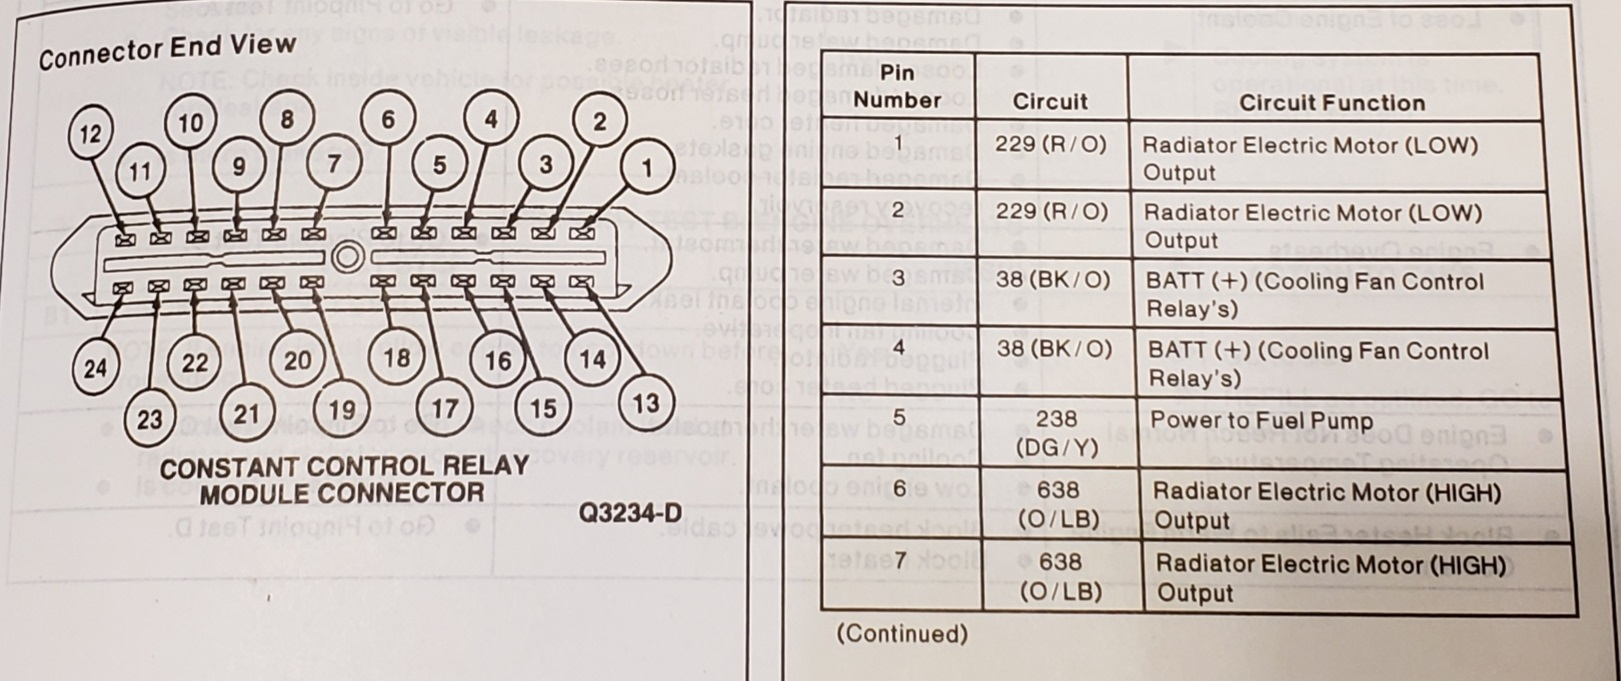 mustang ccrm \u2013 all you need to know! (with diagrams) \u2013 grand touringthis article is supplemental information to our extremely popular video on debunking the myths around the 1994 95 mustang constant control relay module